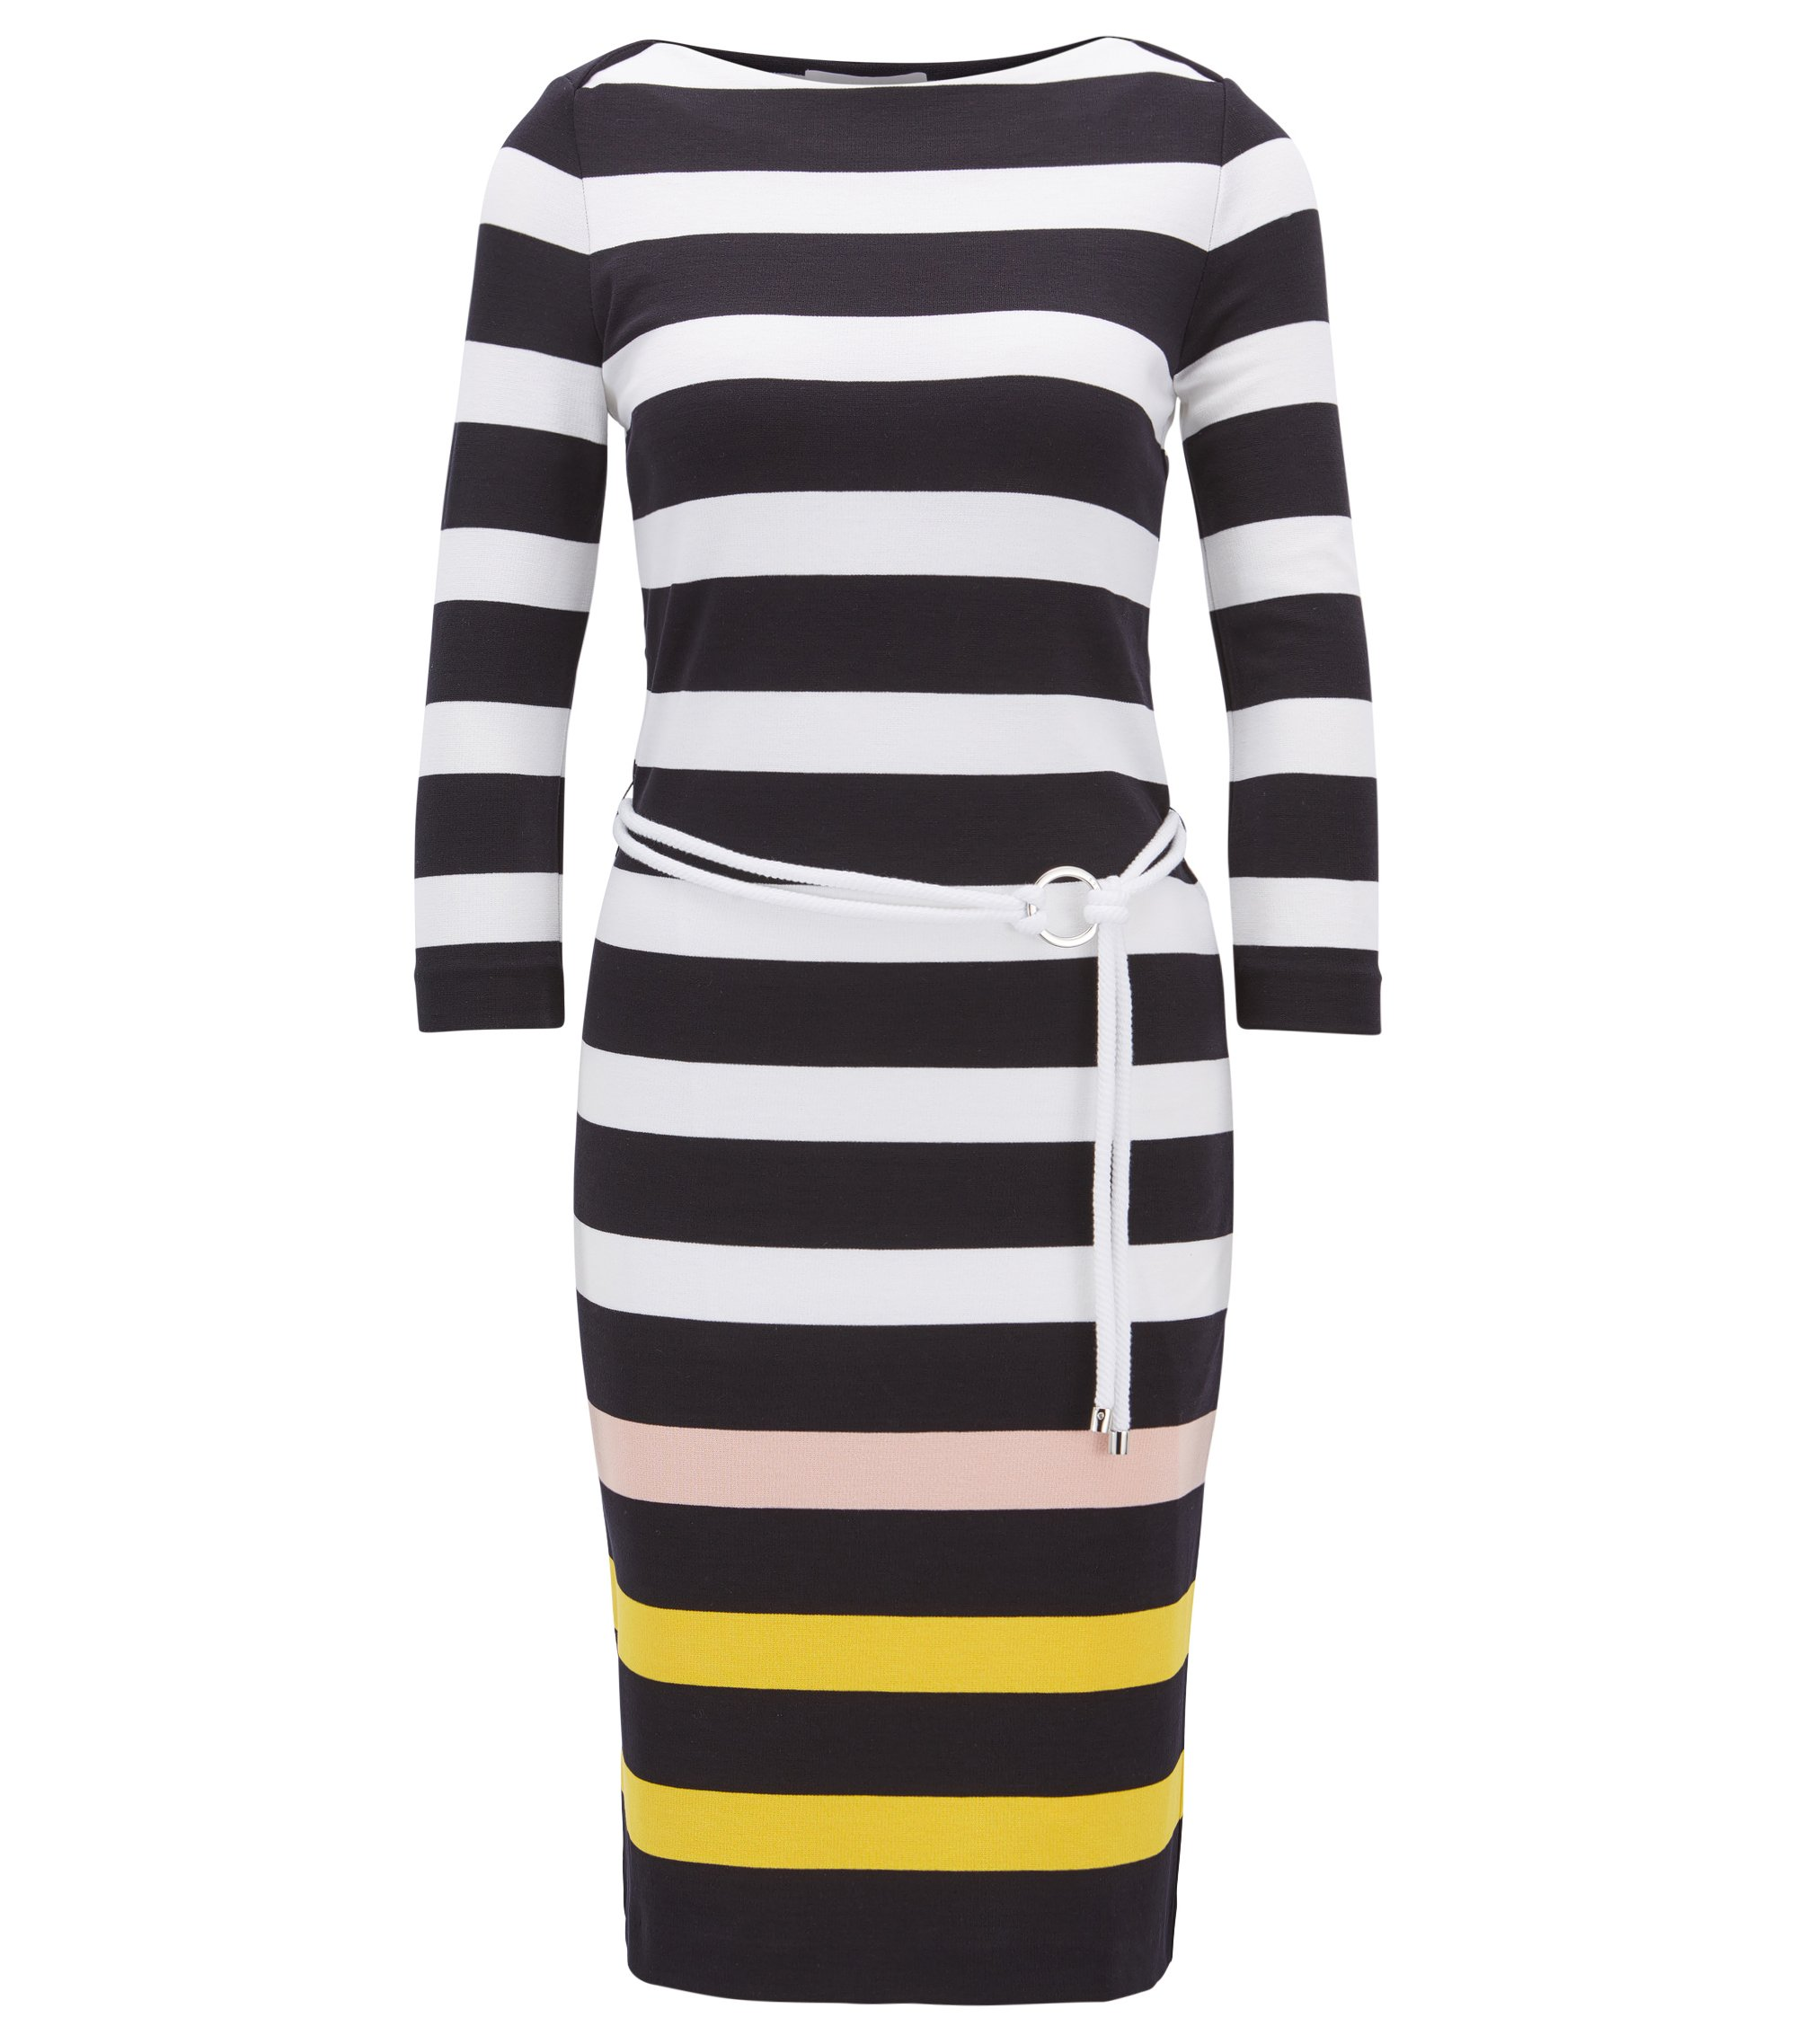 Striped midi dress in stretch jersey with cord belt, Patterned